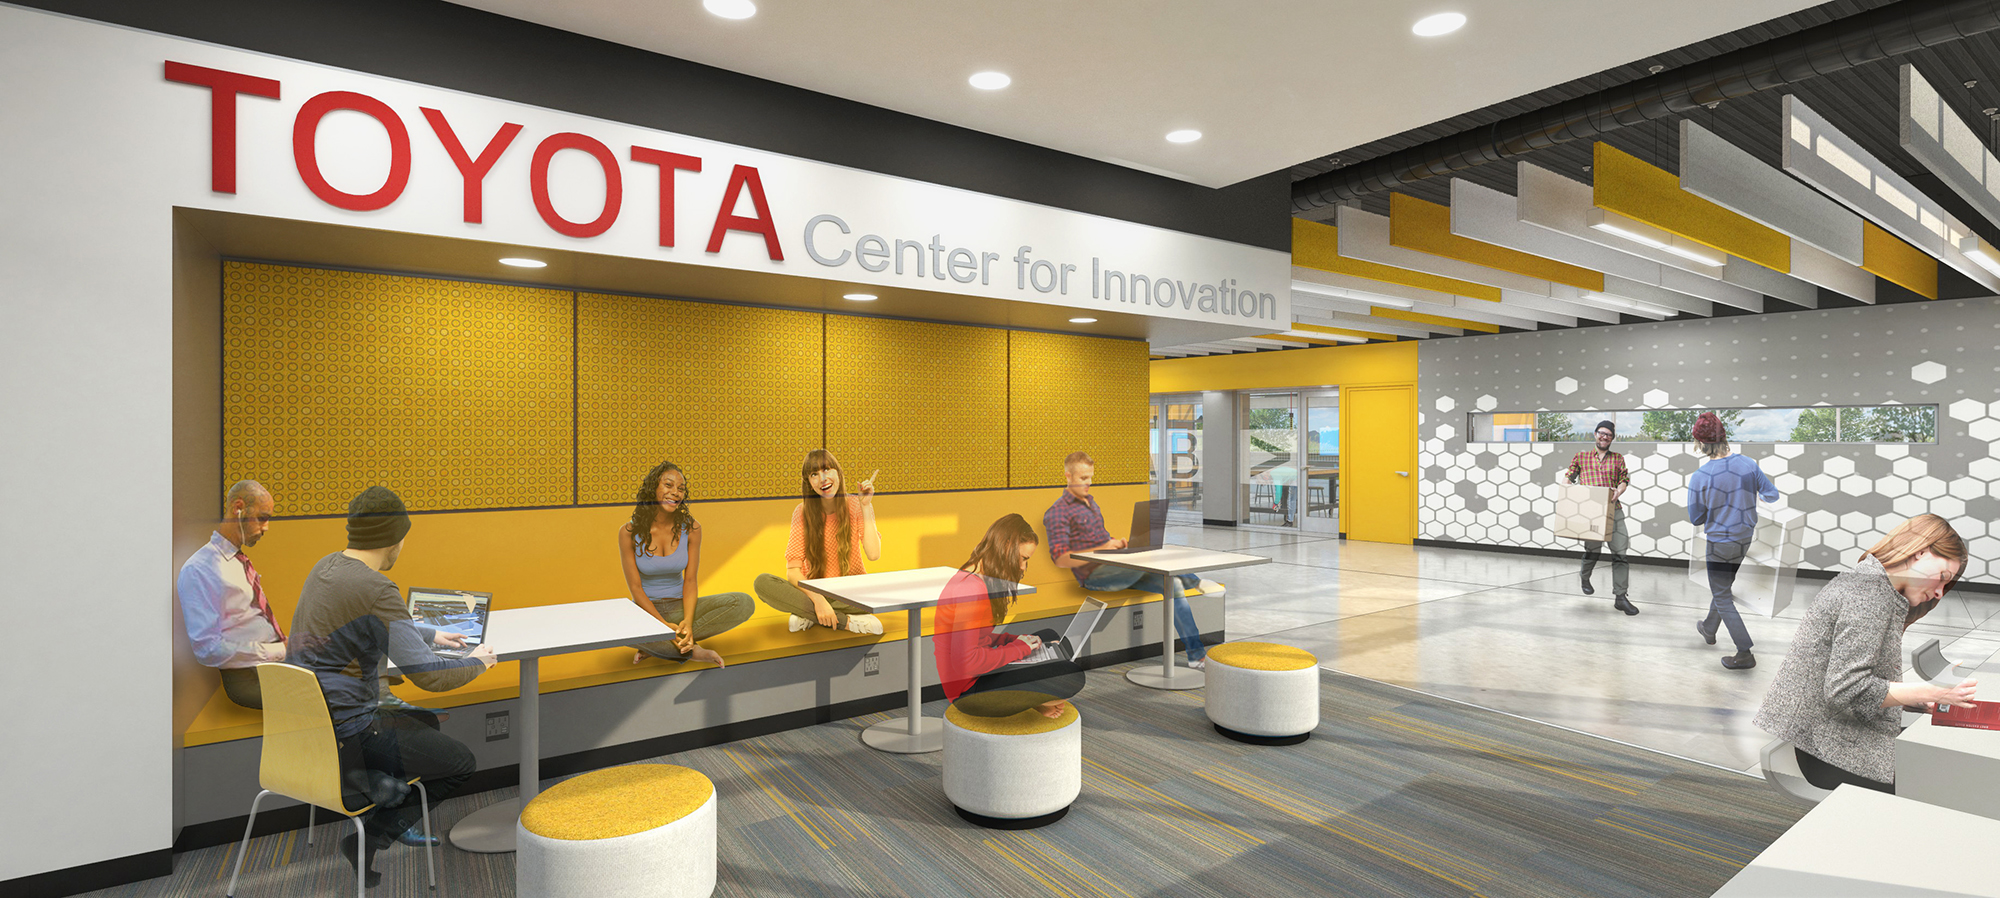 innovation in toyota By sharing the toyota production system, the food bank for ny is now able to provide more meals to those in need in just half the time.